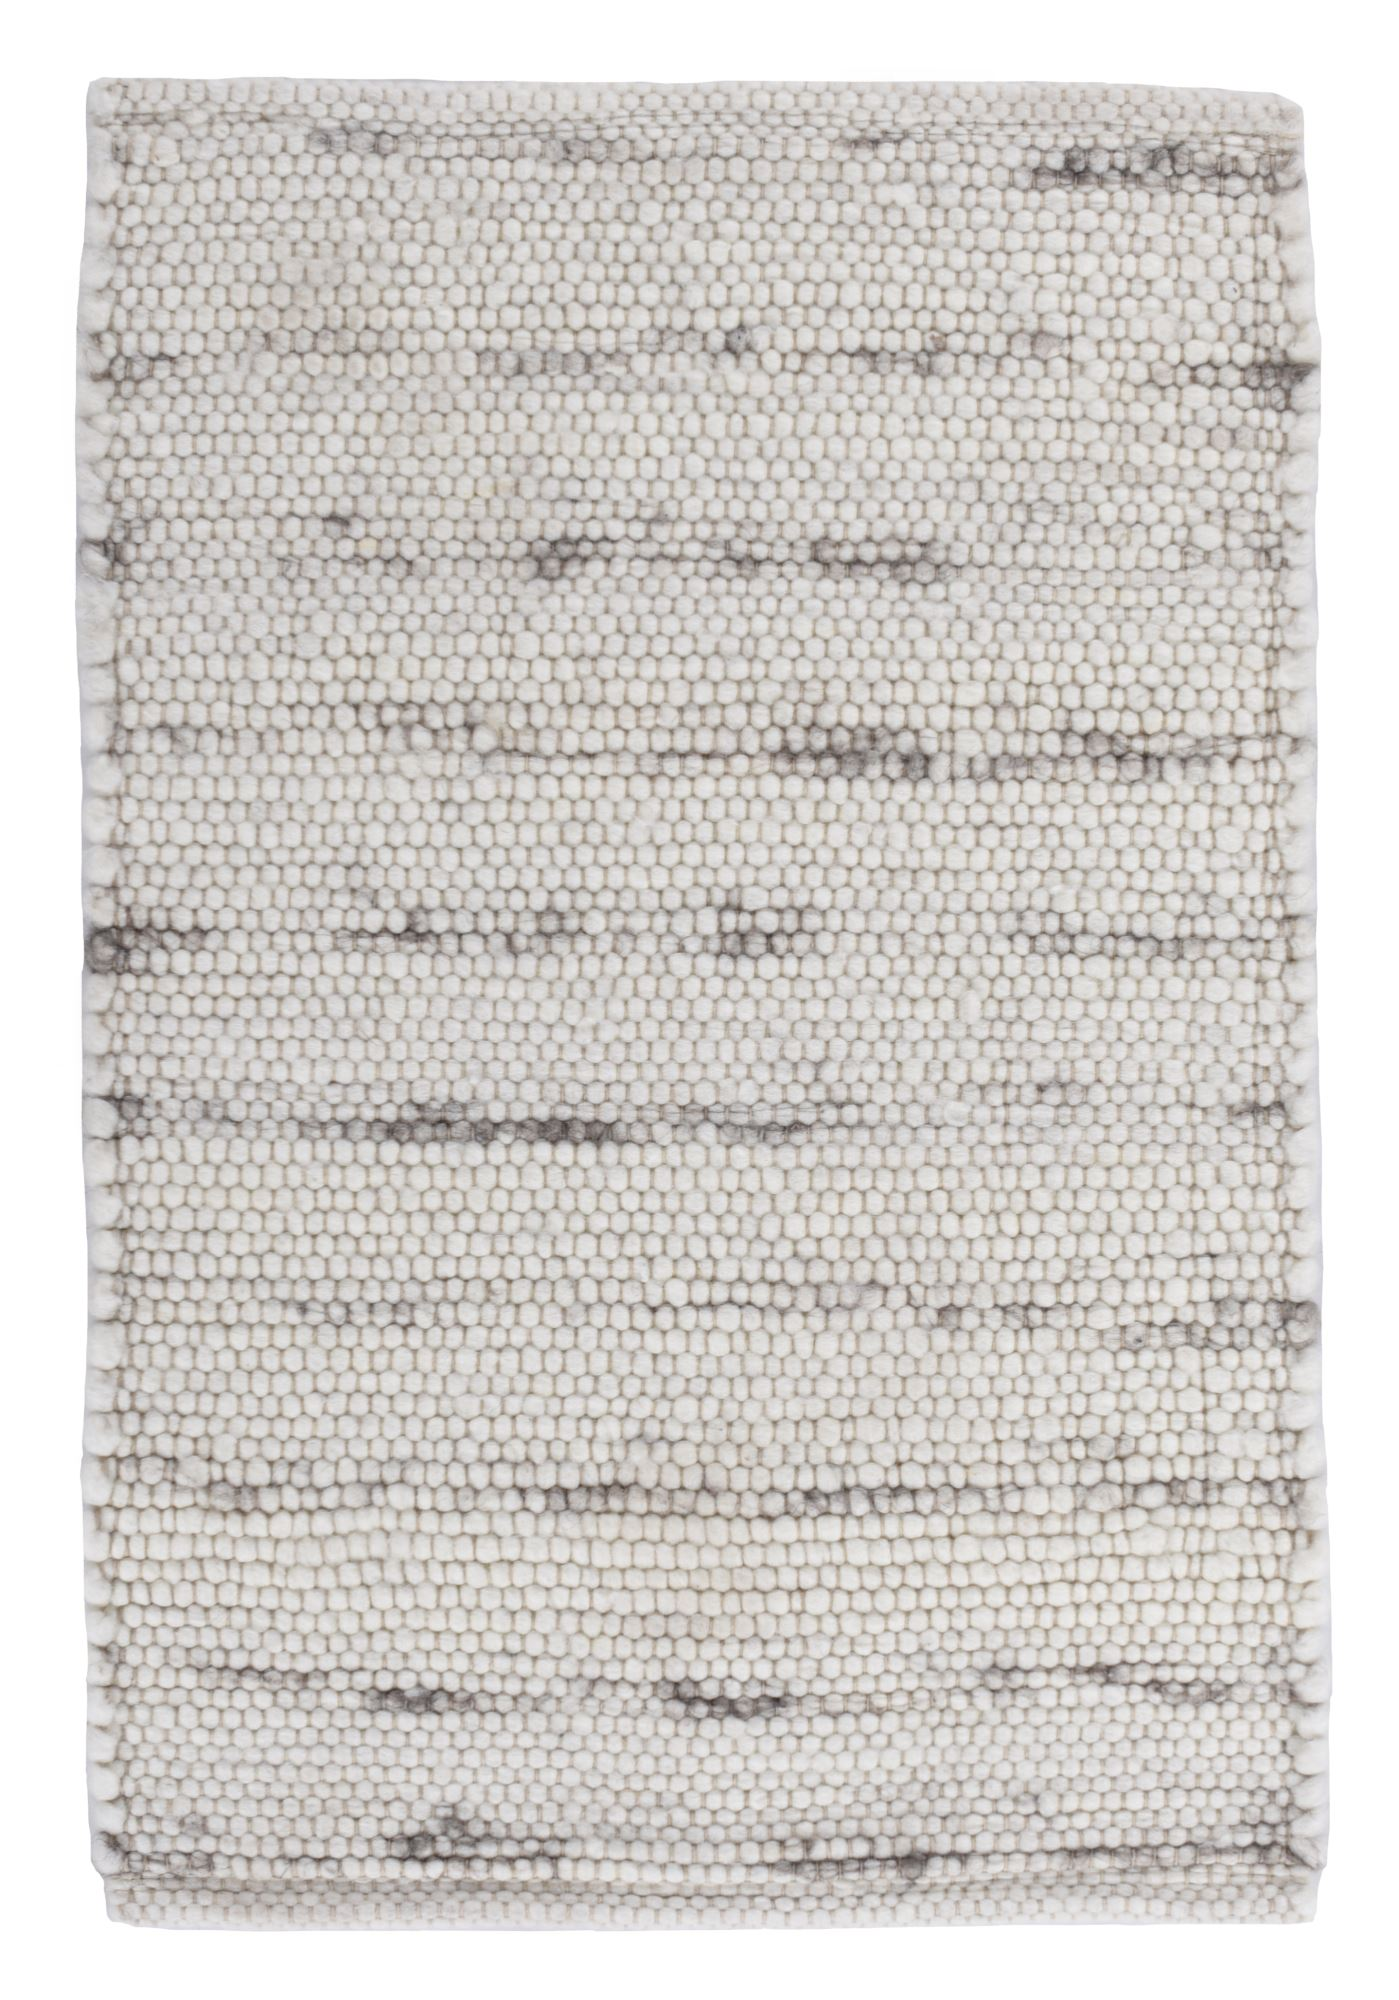 Tapis tissé à la main en laine naturelle natural grey 140x200